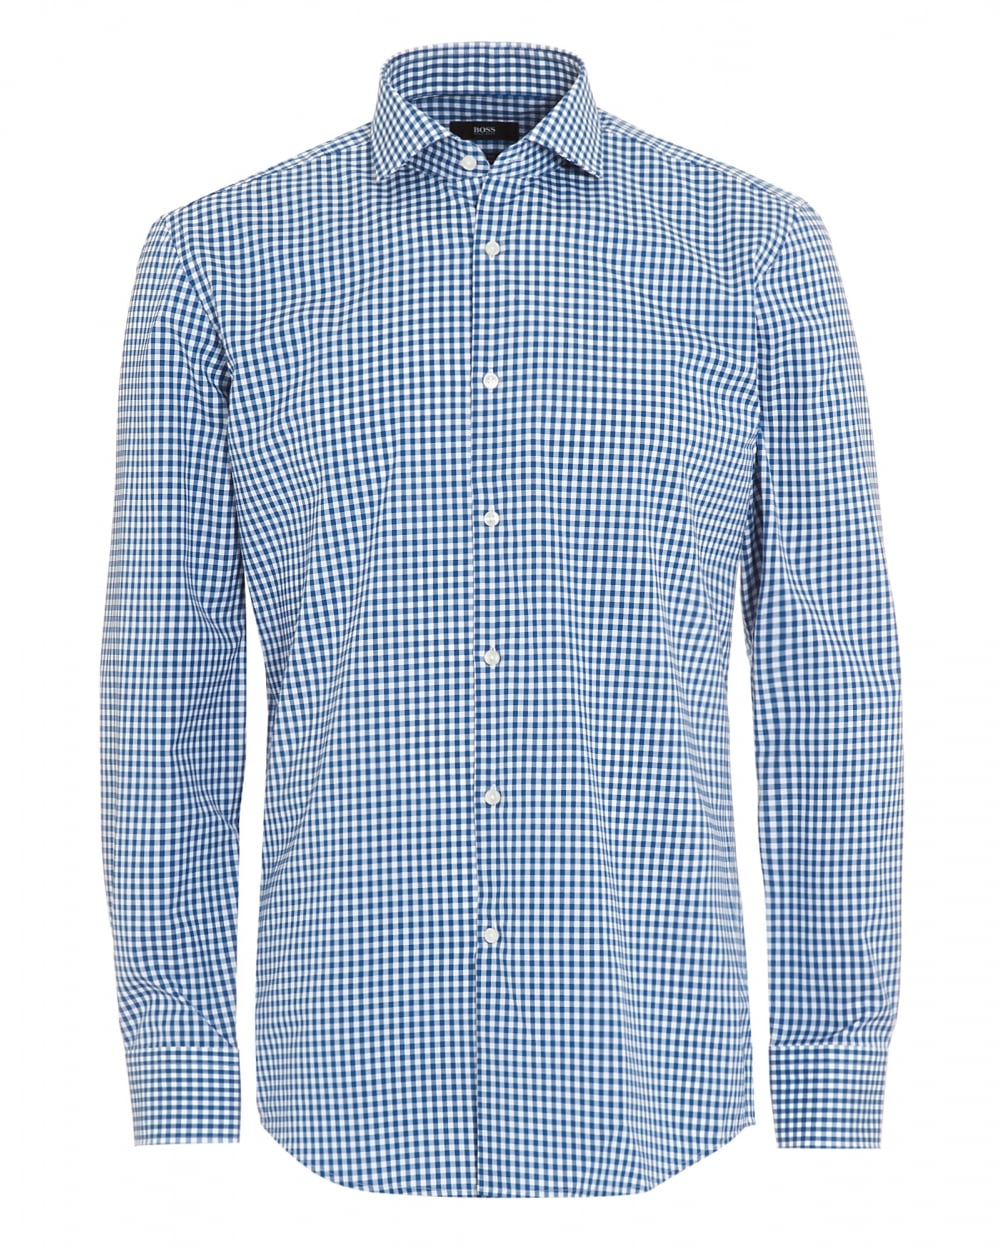 Hugo boss classic mens blue white gingham check jason shirt for Mens blue gingham shirt